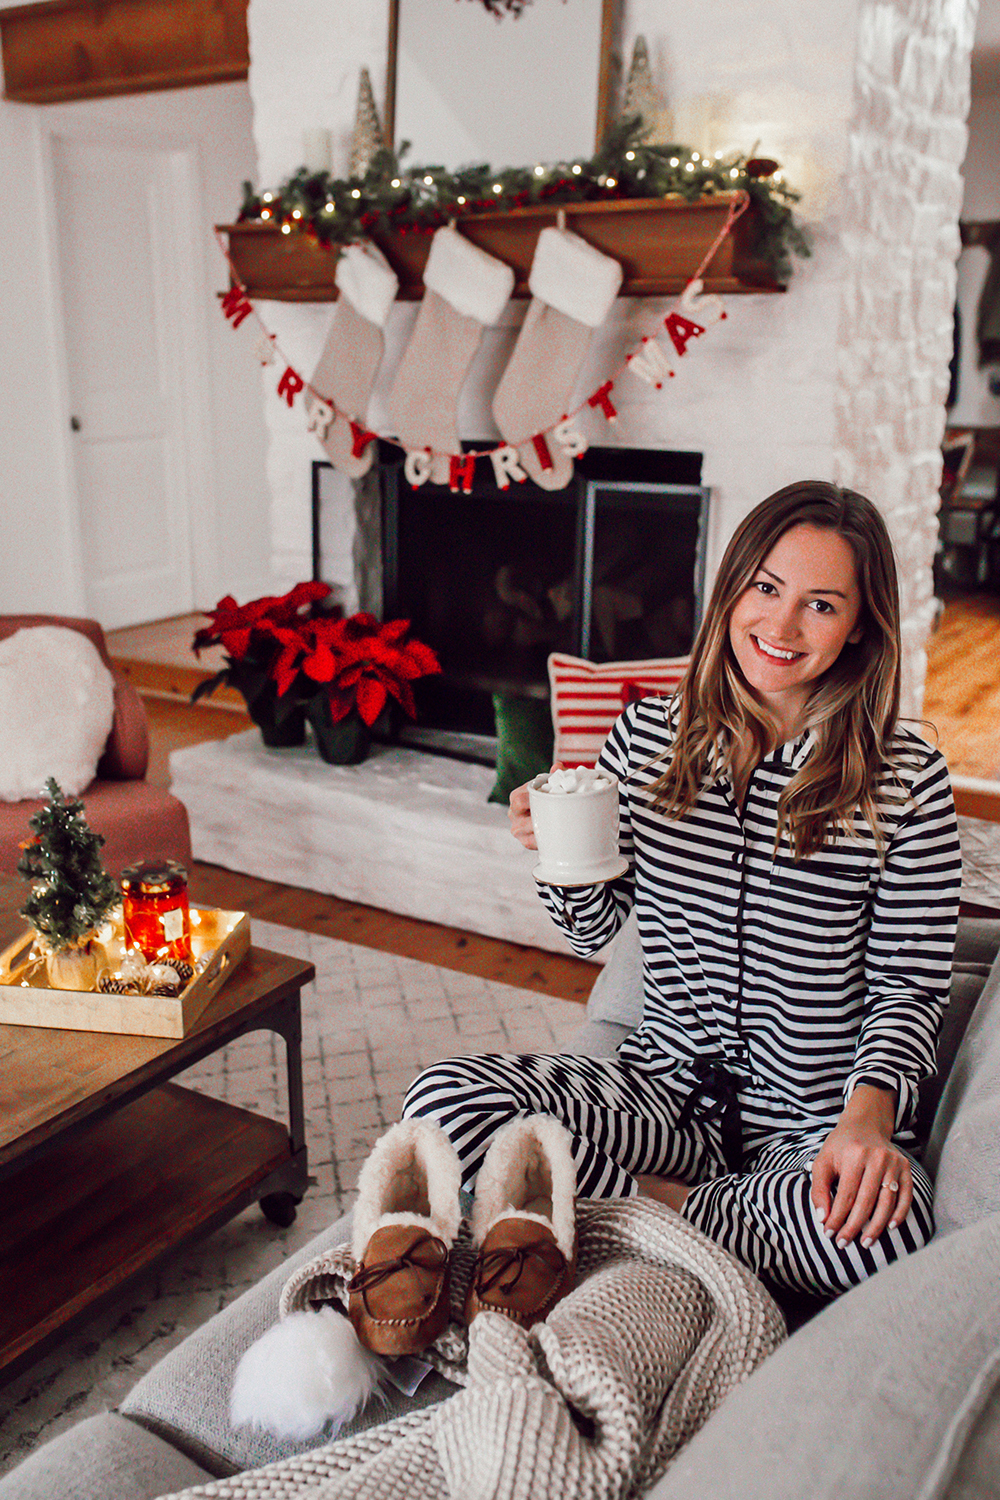 livvyland-blog-olivia-watson-ugg-slippers-cozy-morning-home-kate-spade-striped-pajamas-9